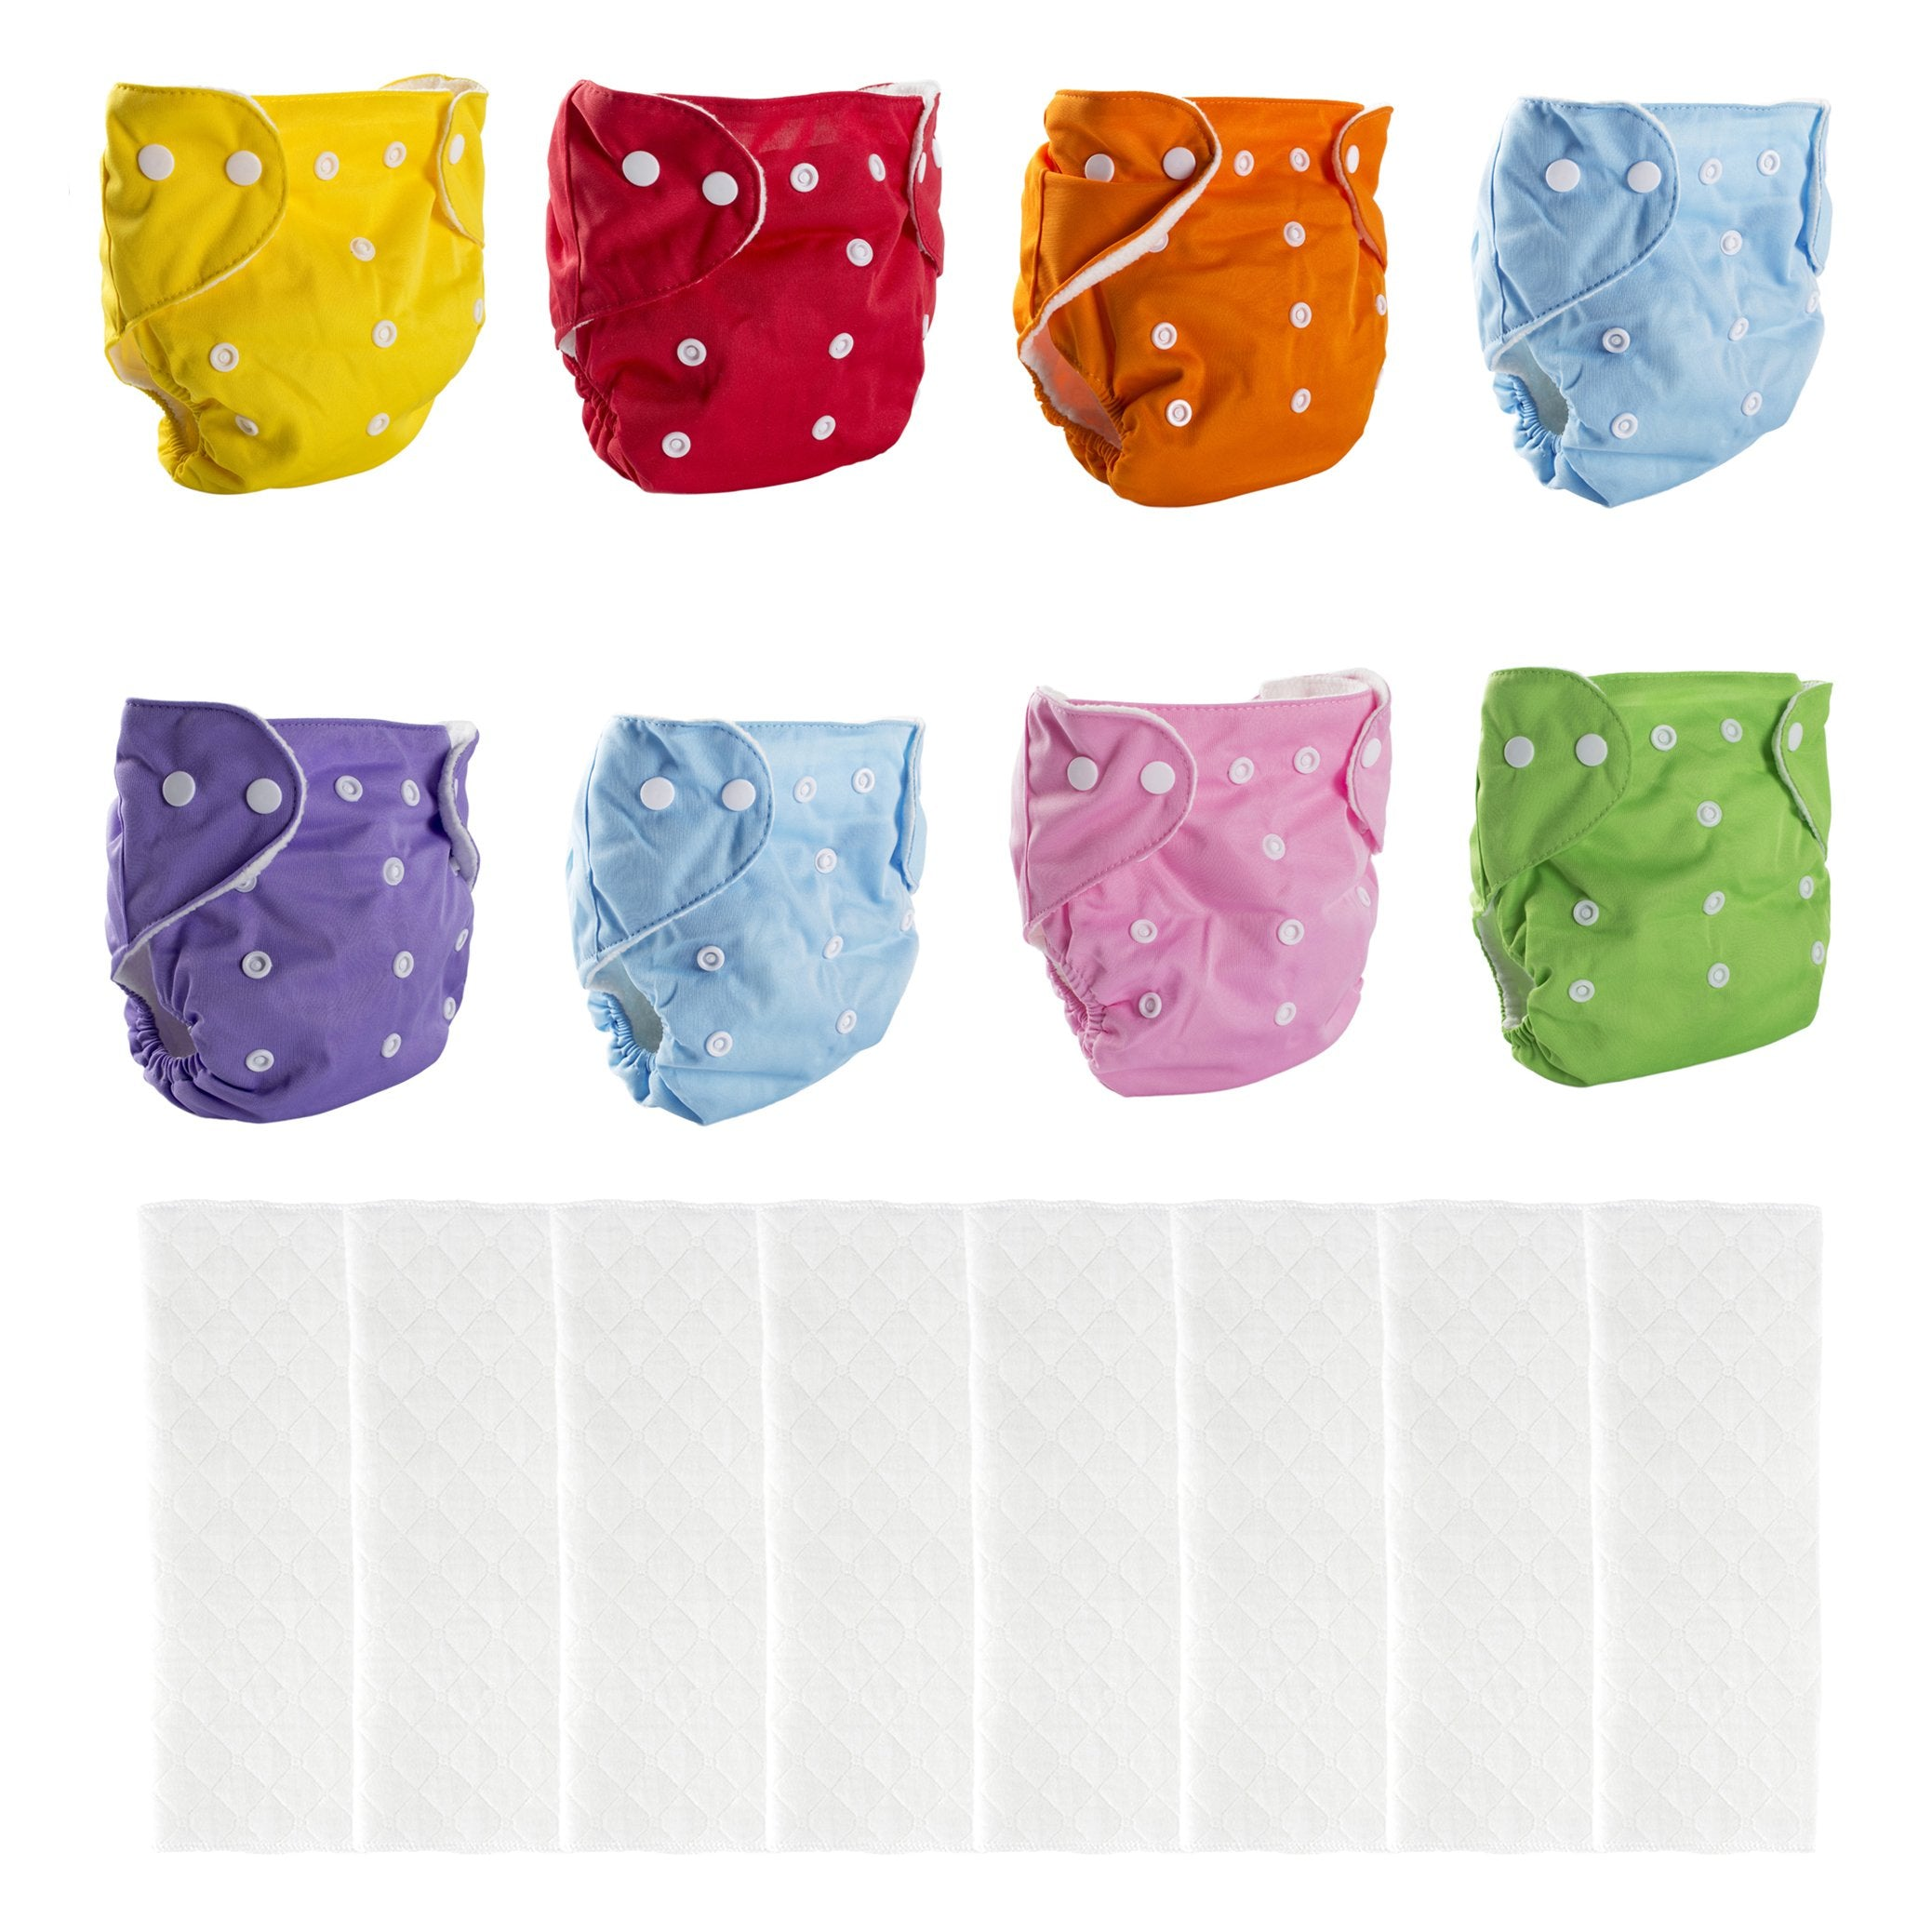 8_piece_baby_reusable_diapers_8_pack_inserts